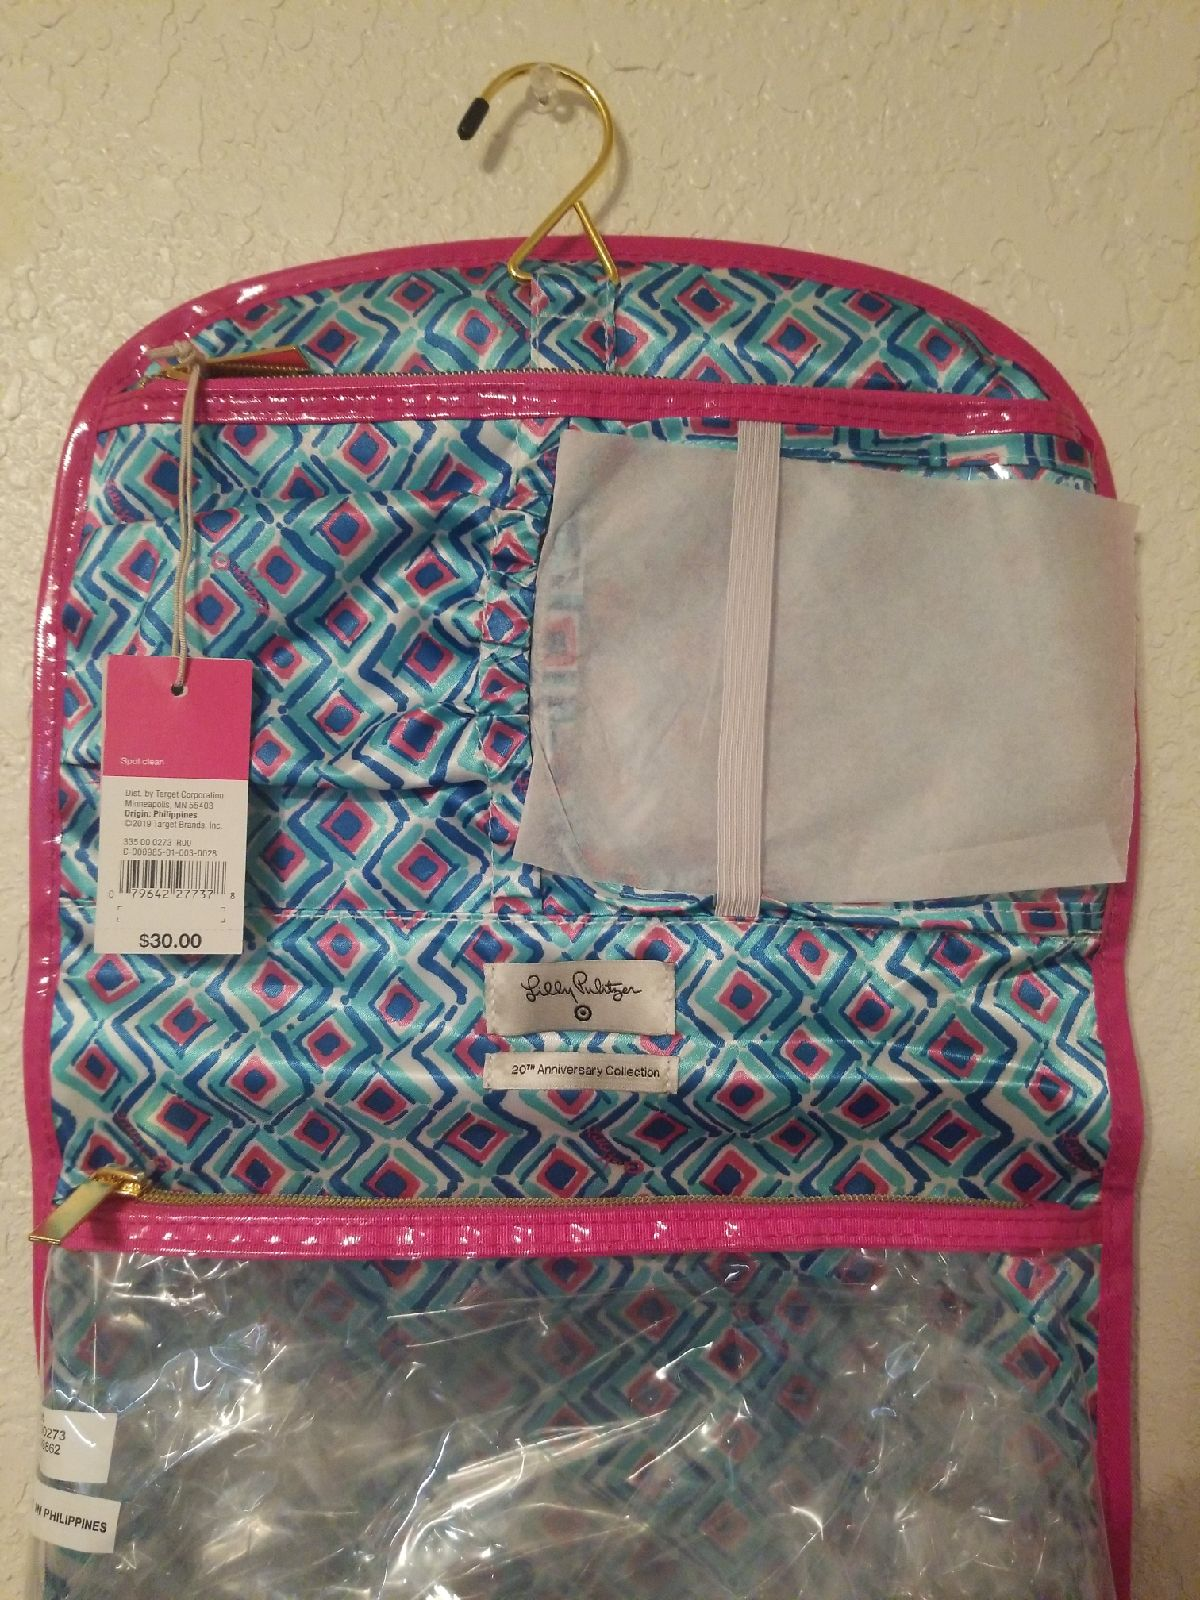 Lilly Pulitzer travel cosmetic bag